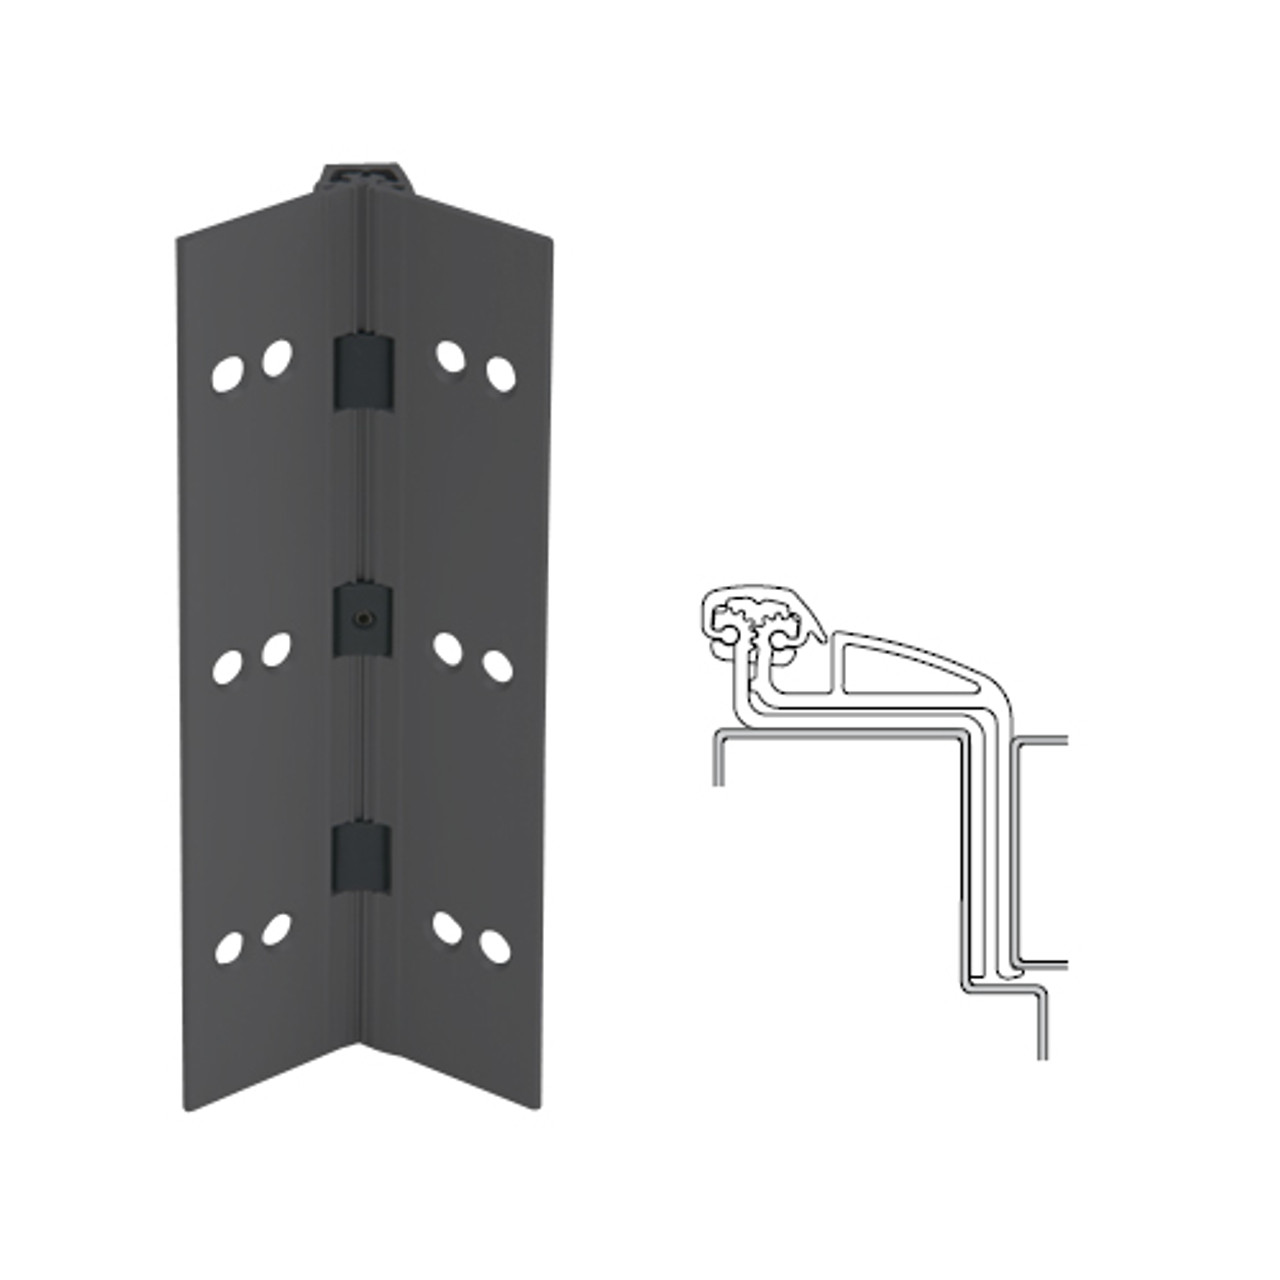 041XY-315AN-83 IVES Full Mortise Continuous Geared Hinges in Anodized Black